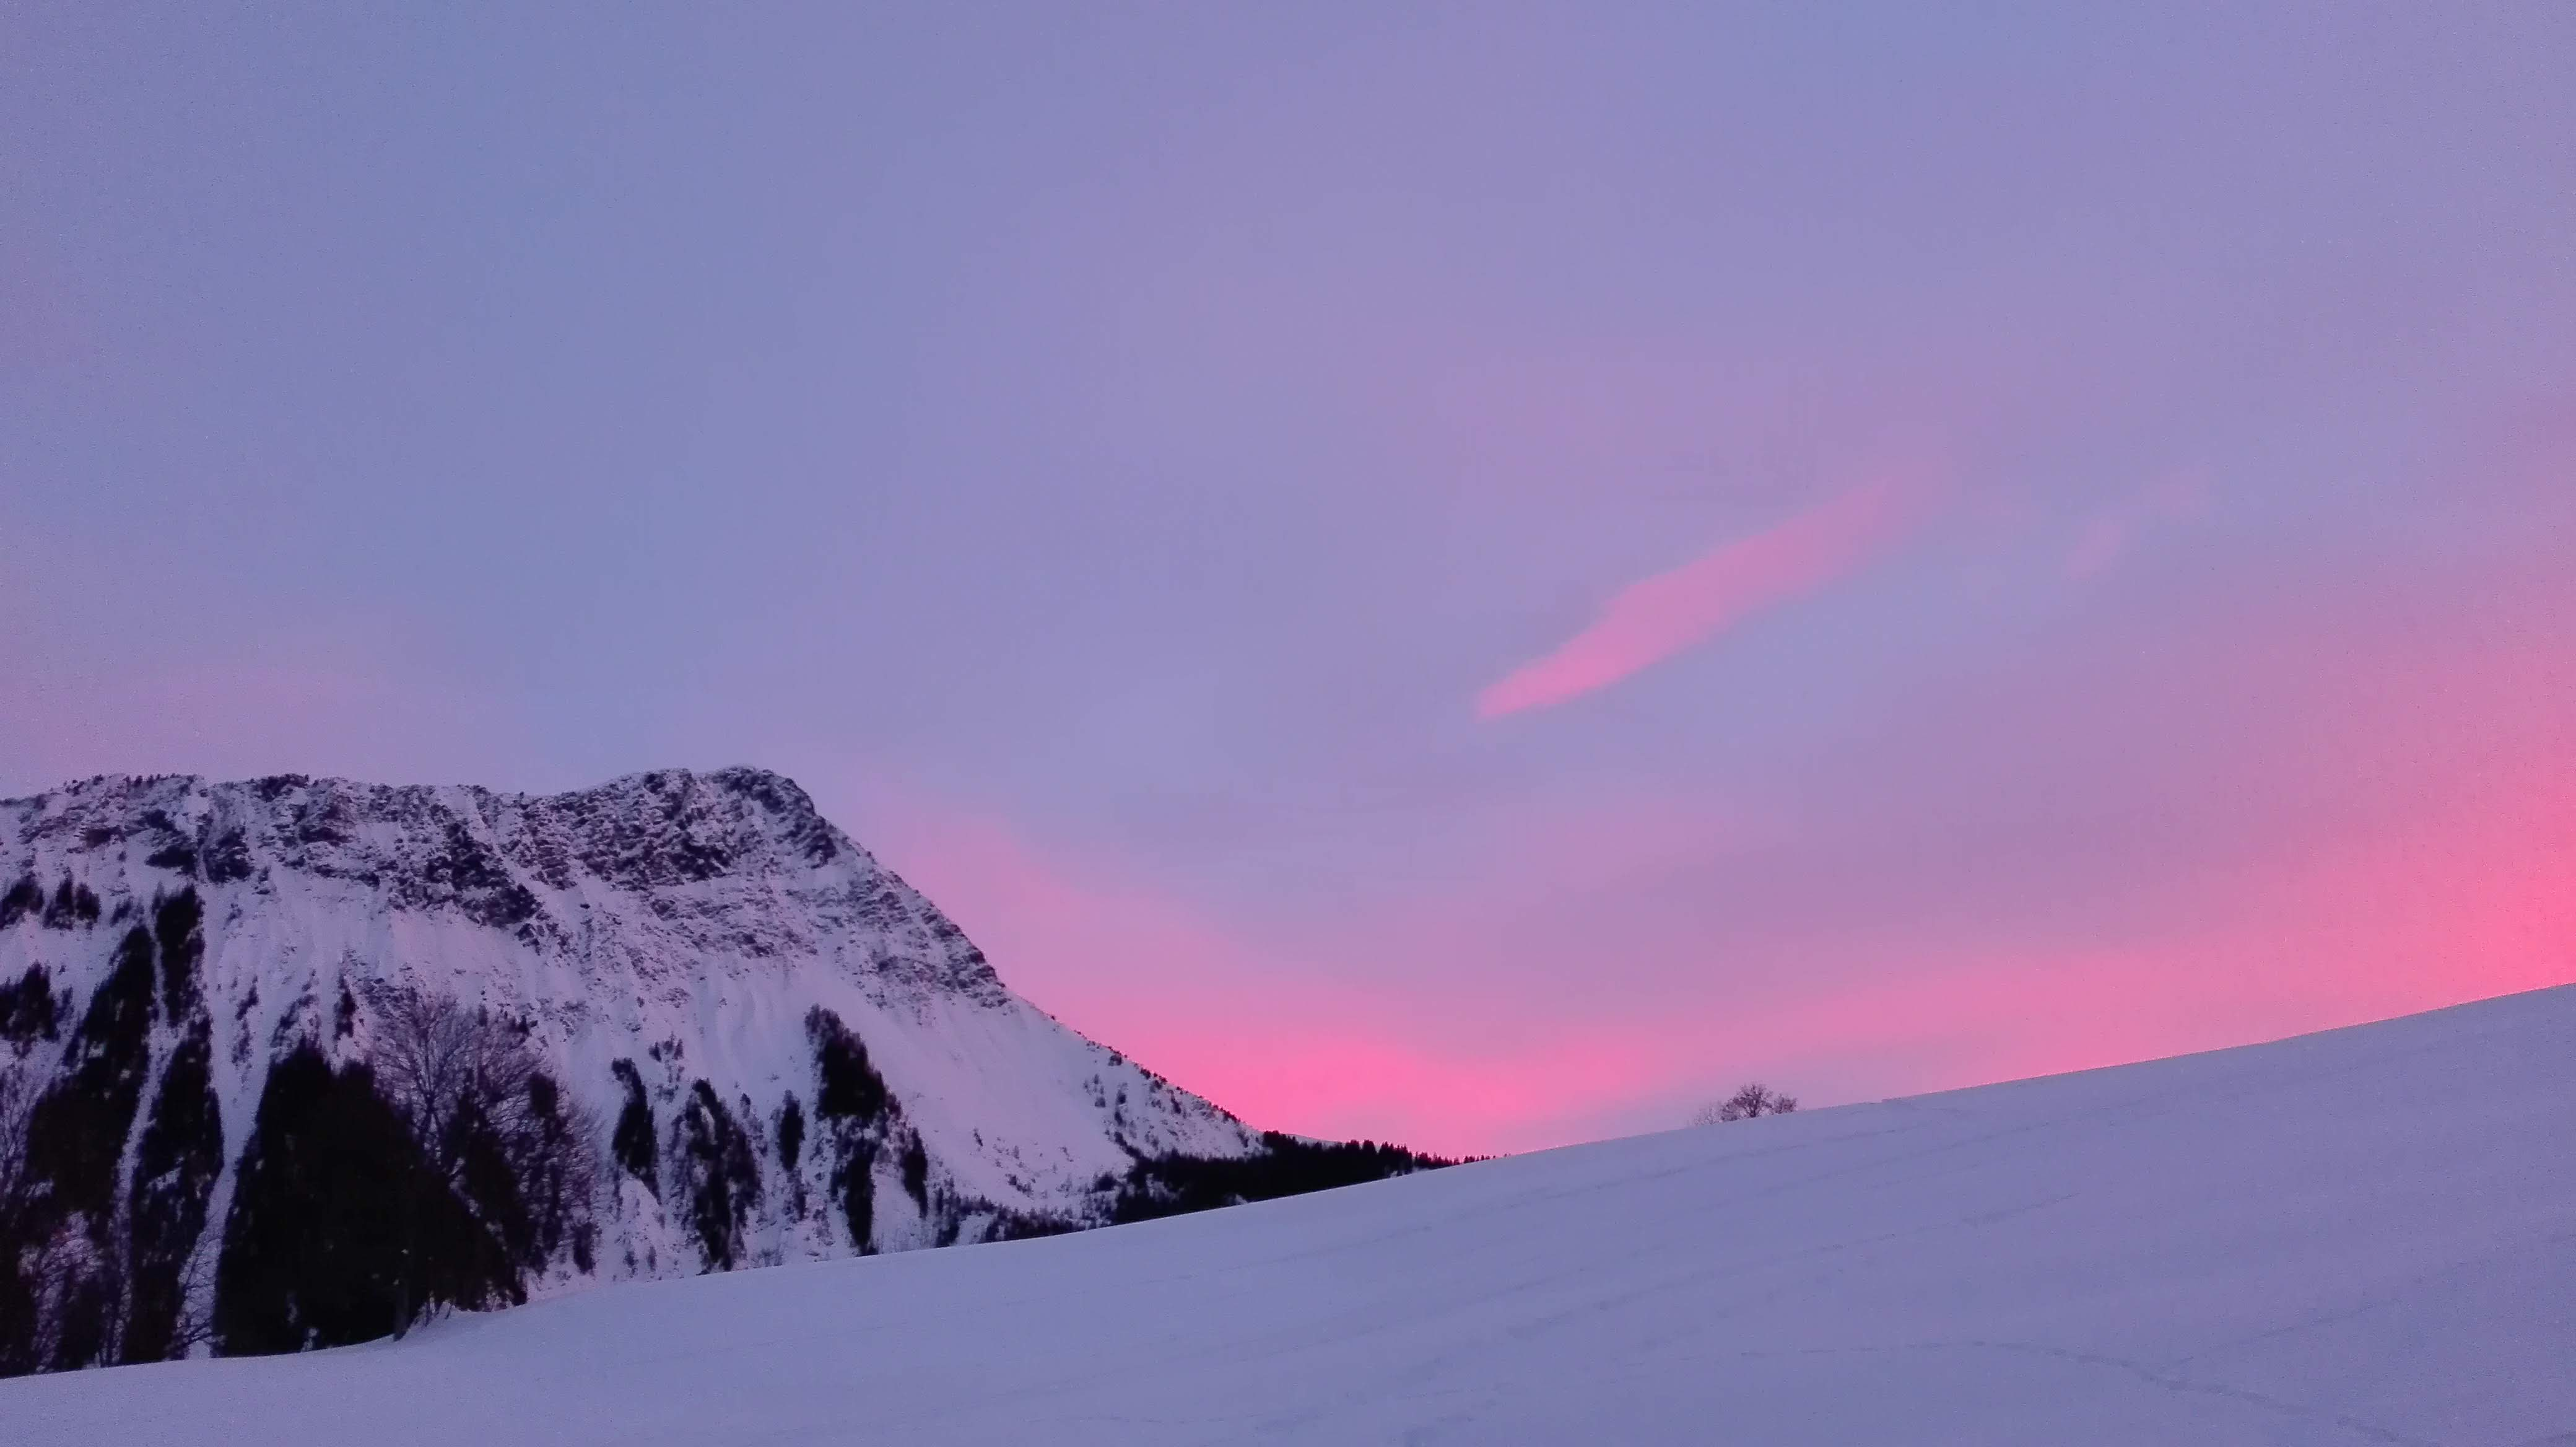 Sunset over Le Corbier, 8 feb 2019